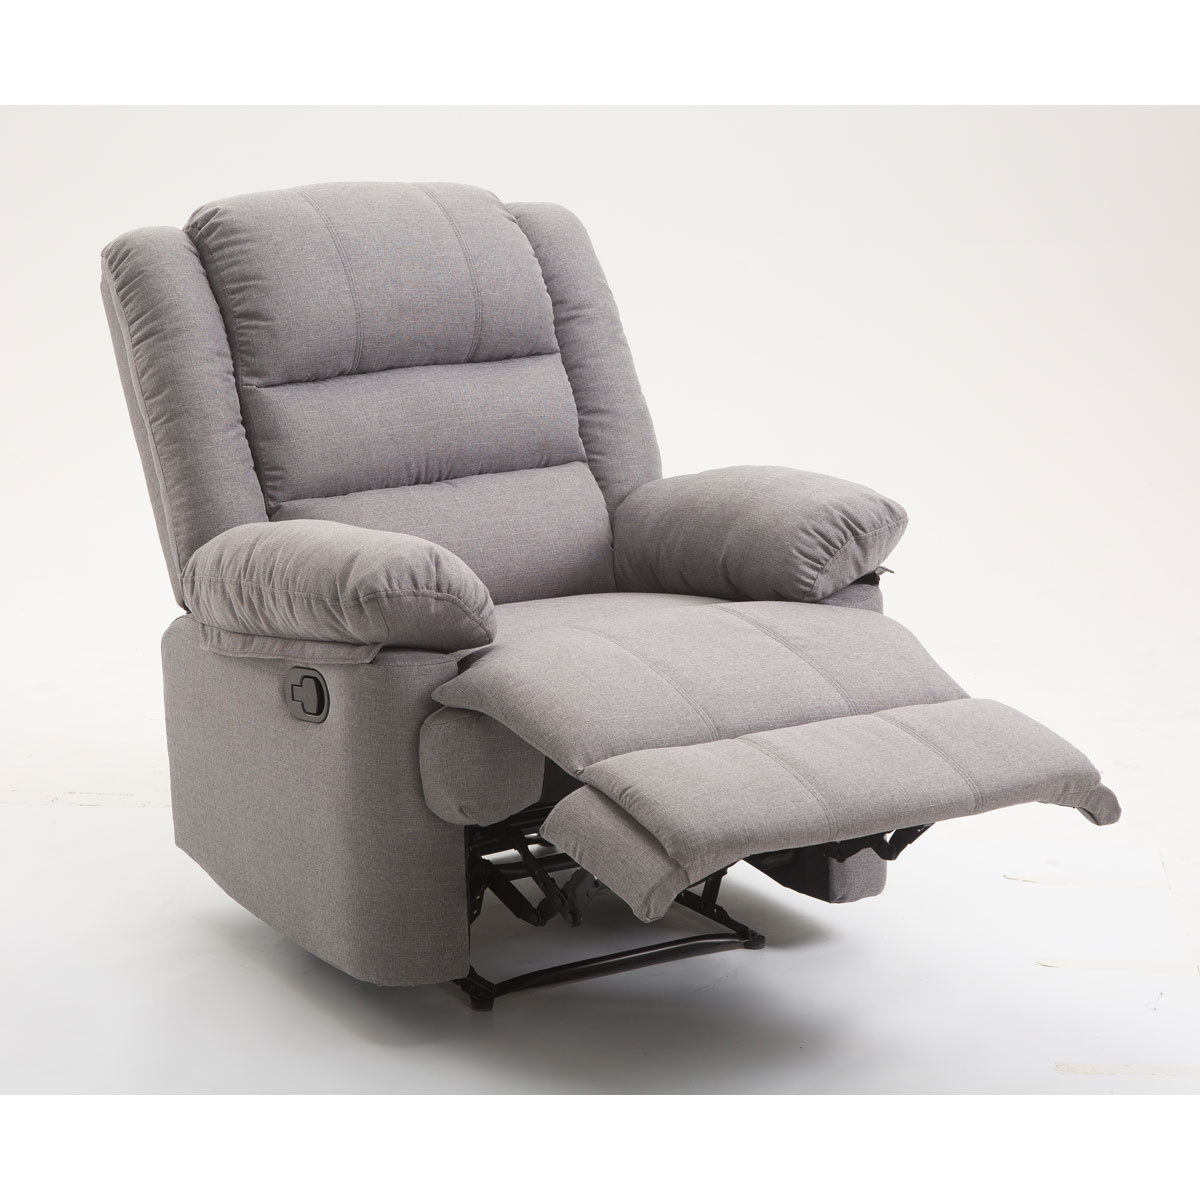 Fauteuil 1 place inclinable BORA gris